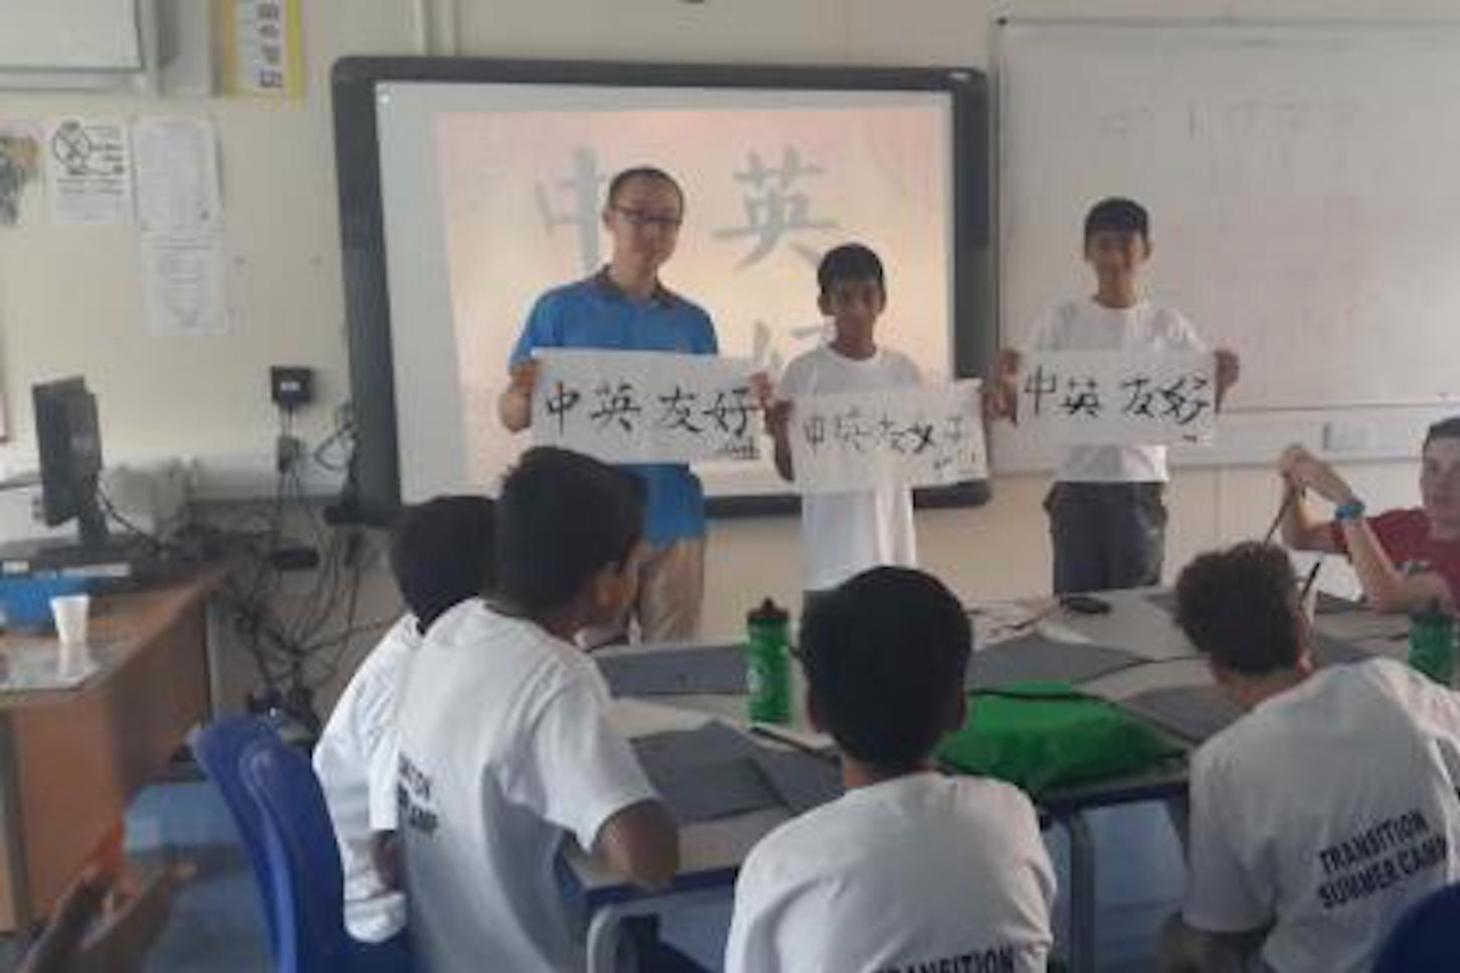 Students learning Chinese calligraphy